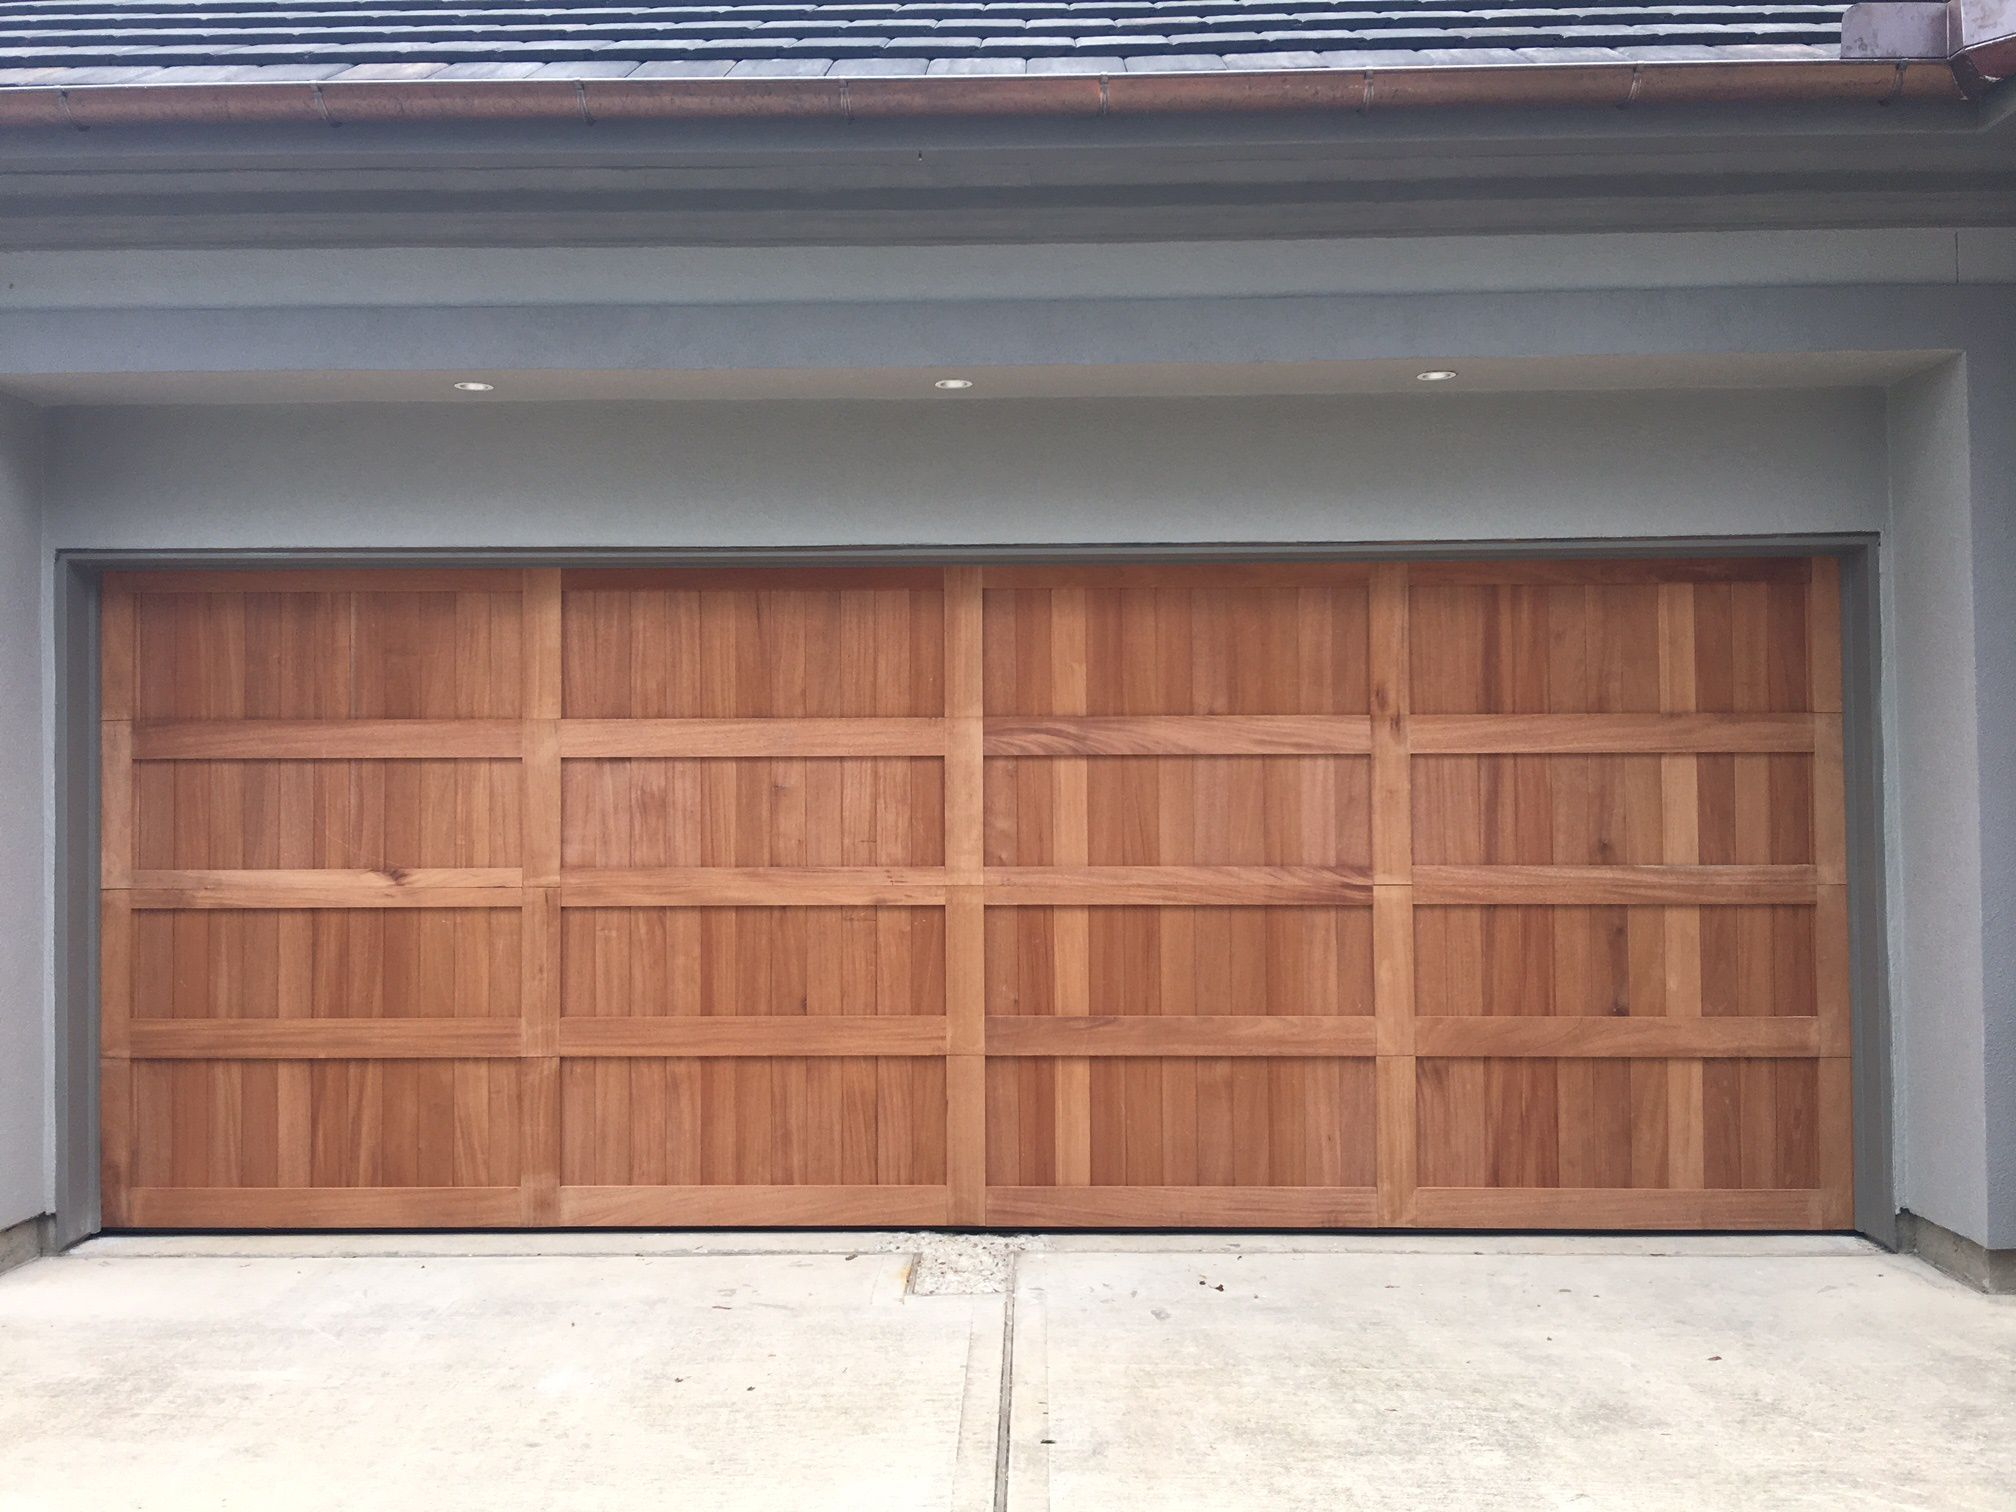 Gallery Garage Doors In Houston Garage Doors Doors Garage Door Company